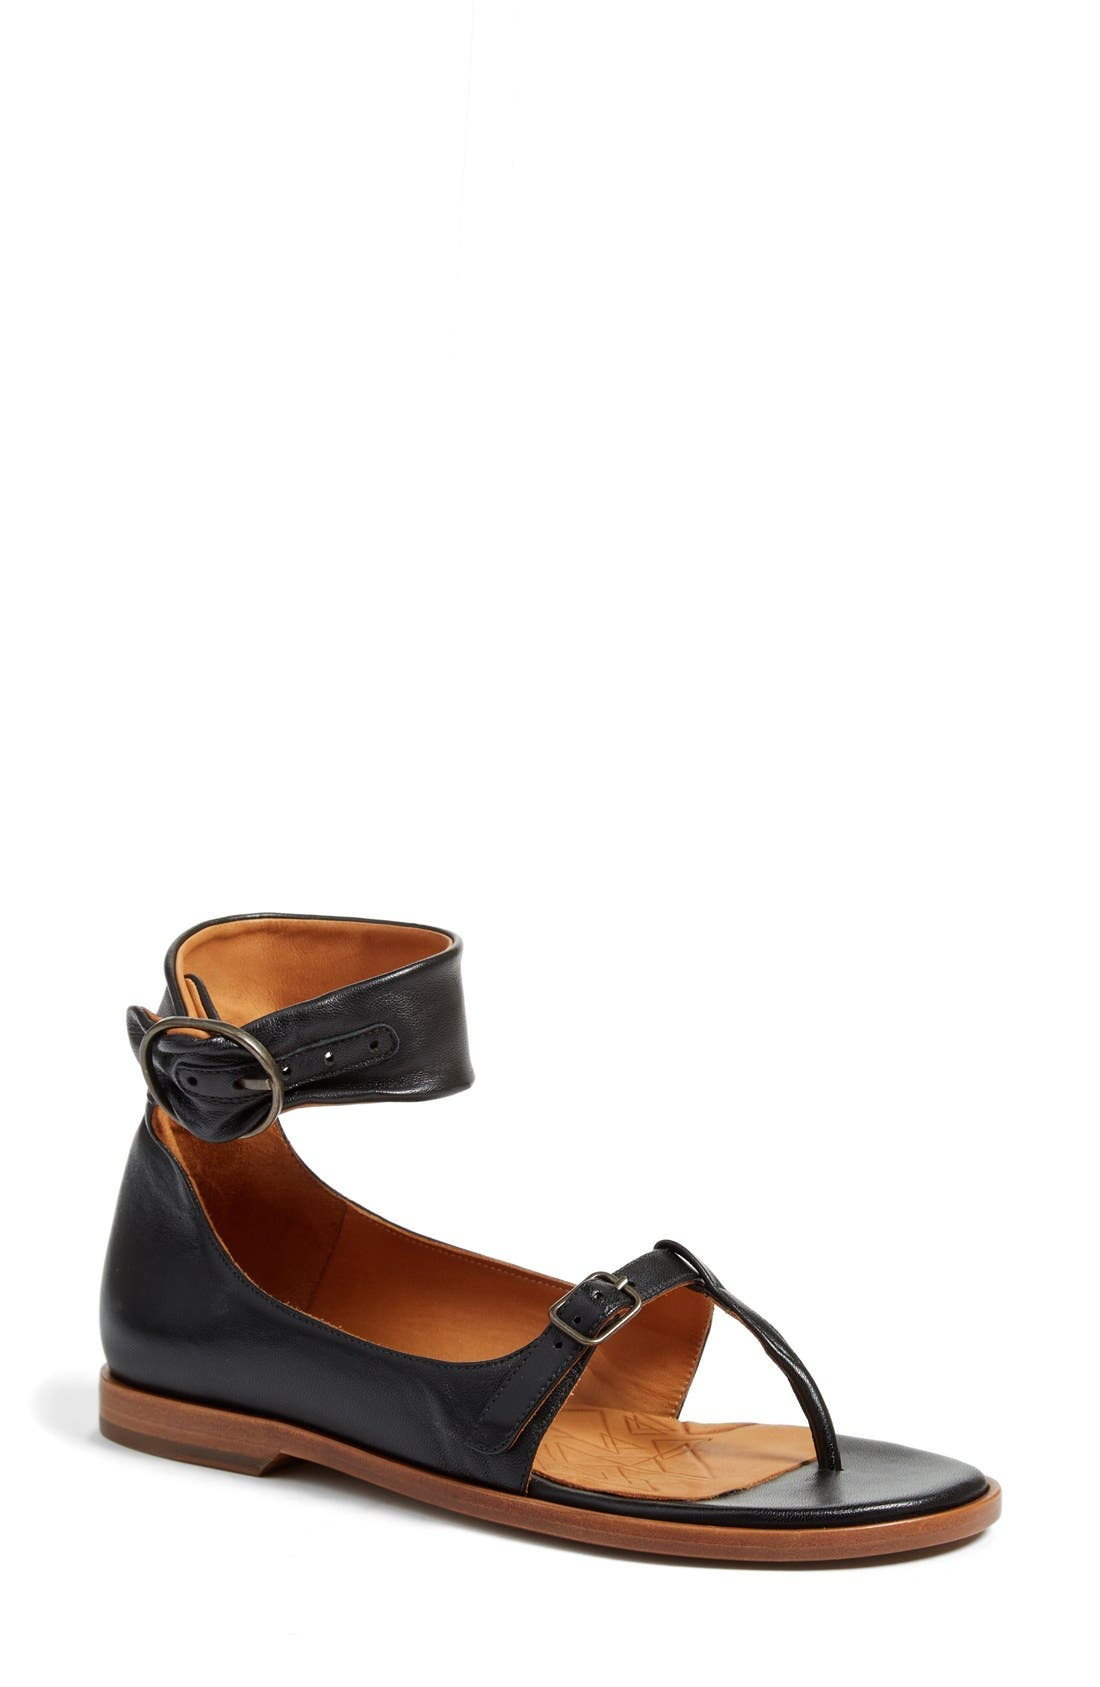 CHIE MIHARA Queen Ankle Strap Sandal